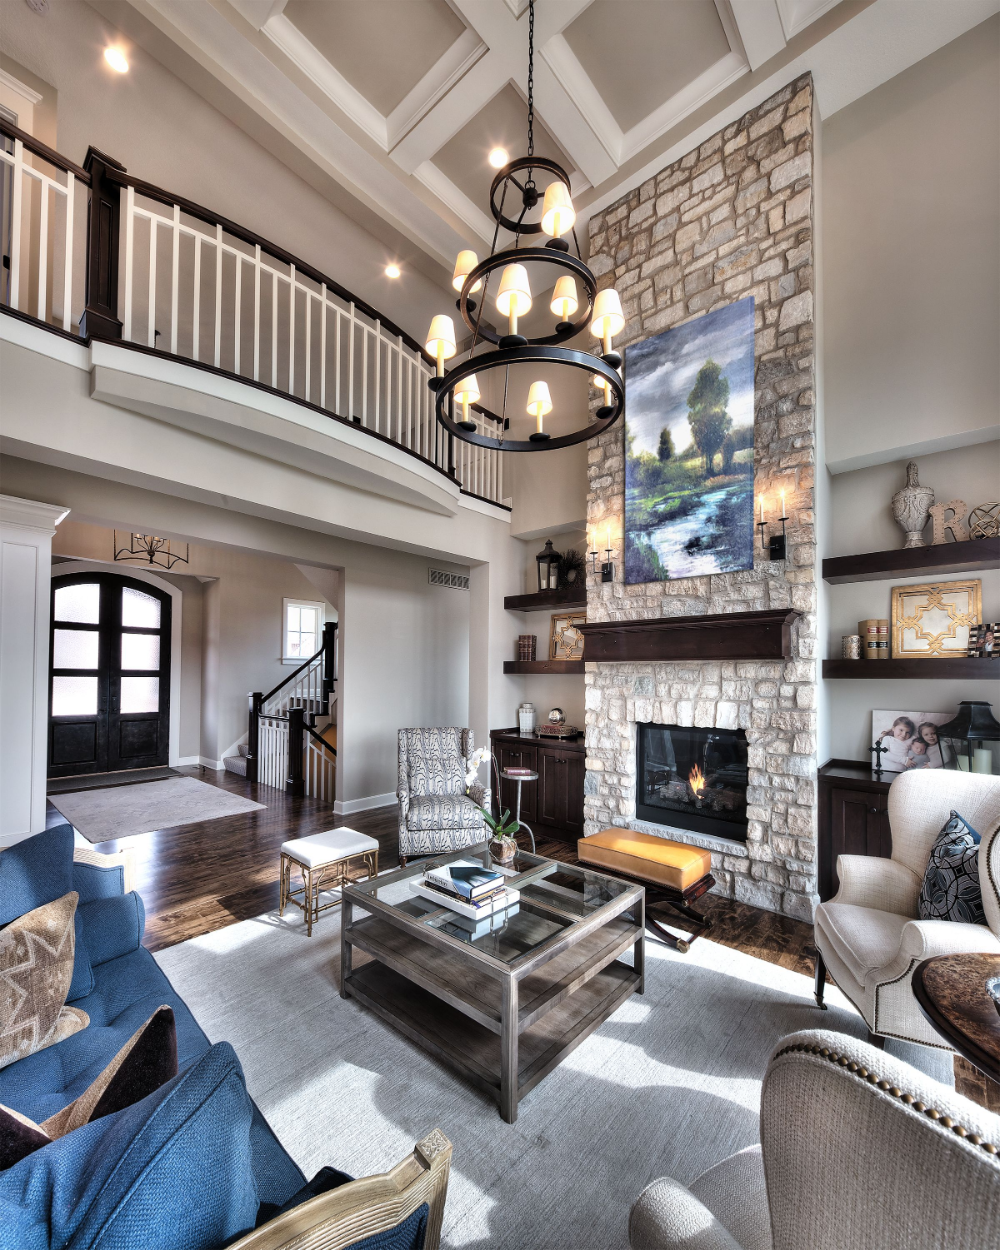 This Spacious Gorgeous Living Room Color With Hanging Lights Glow Your Living Area In 2020 High Ceiling Living Room Family Living Room Design Family Living Rooms